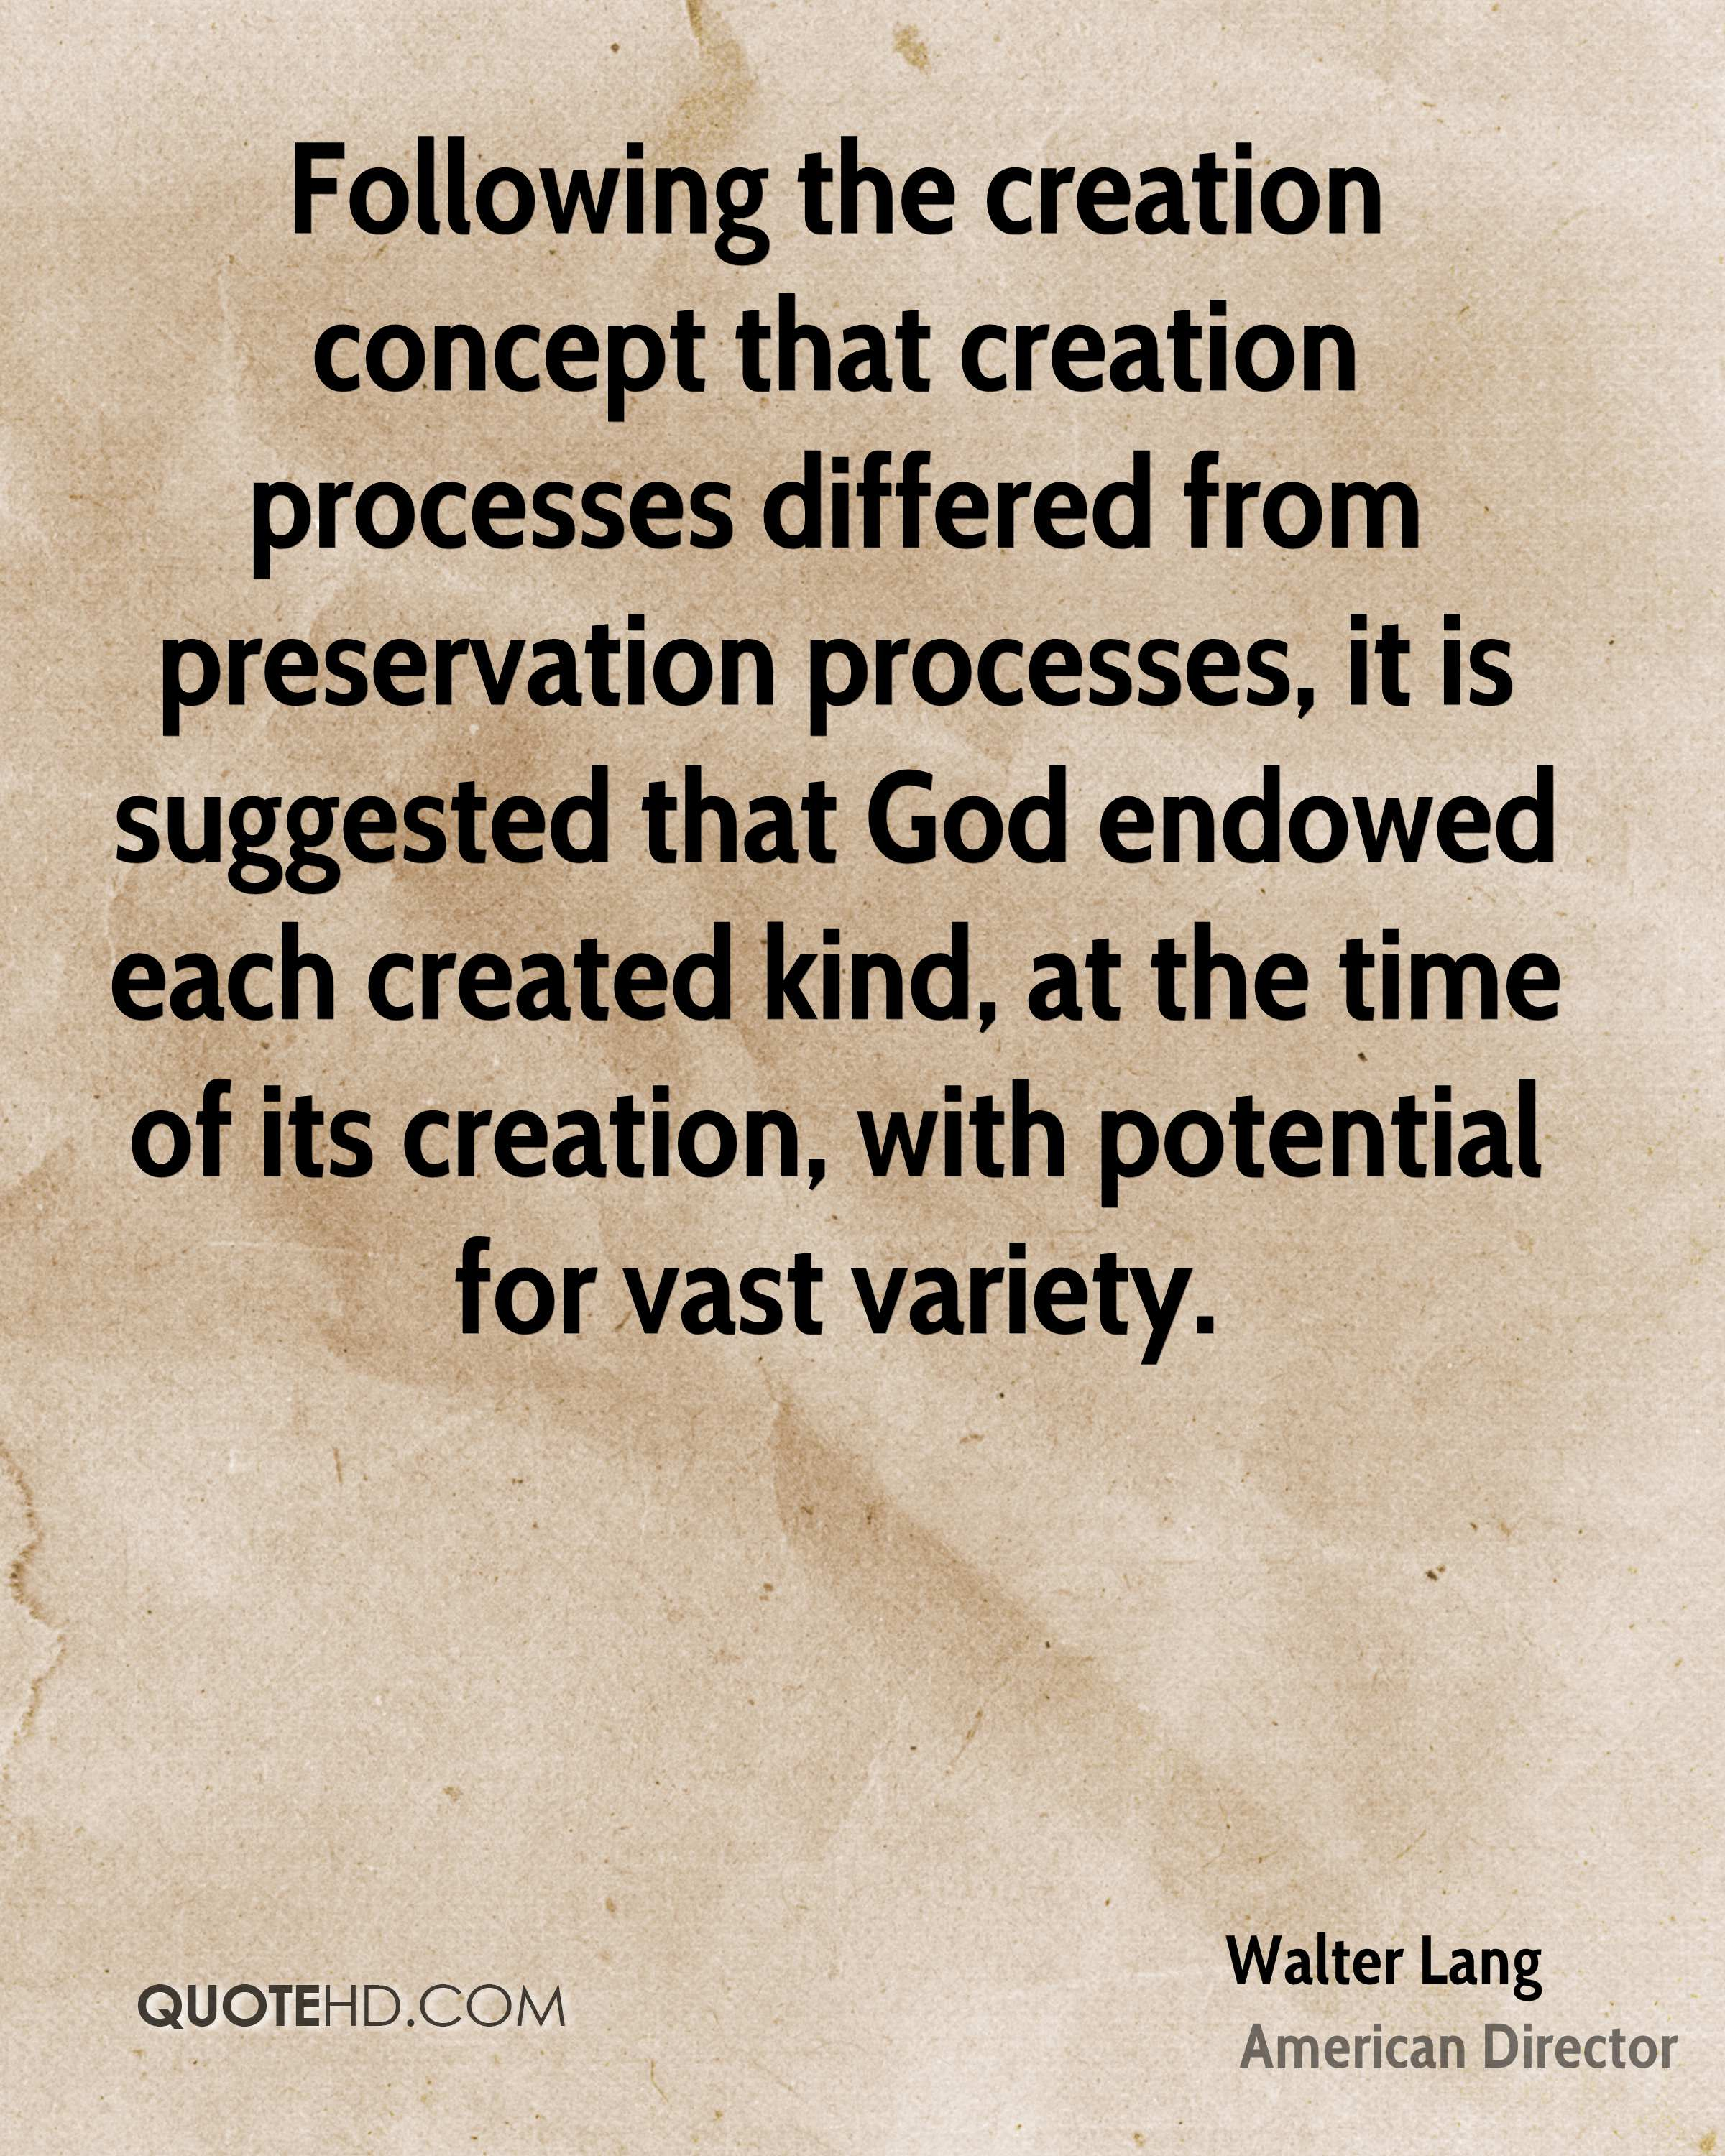 Following the creation concept that creation processes differed from preservation processes, it is suggested that God endowed each created kind, at the time of its creation, with potential for vast variety.